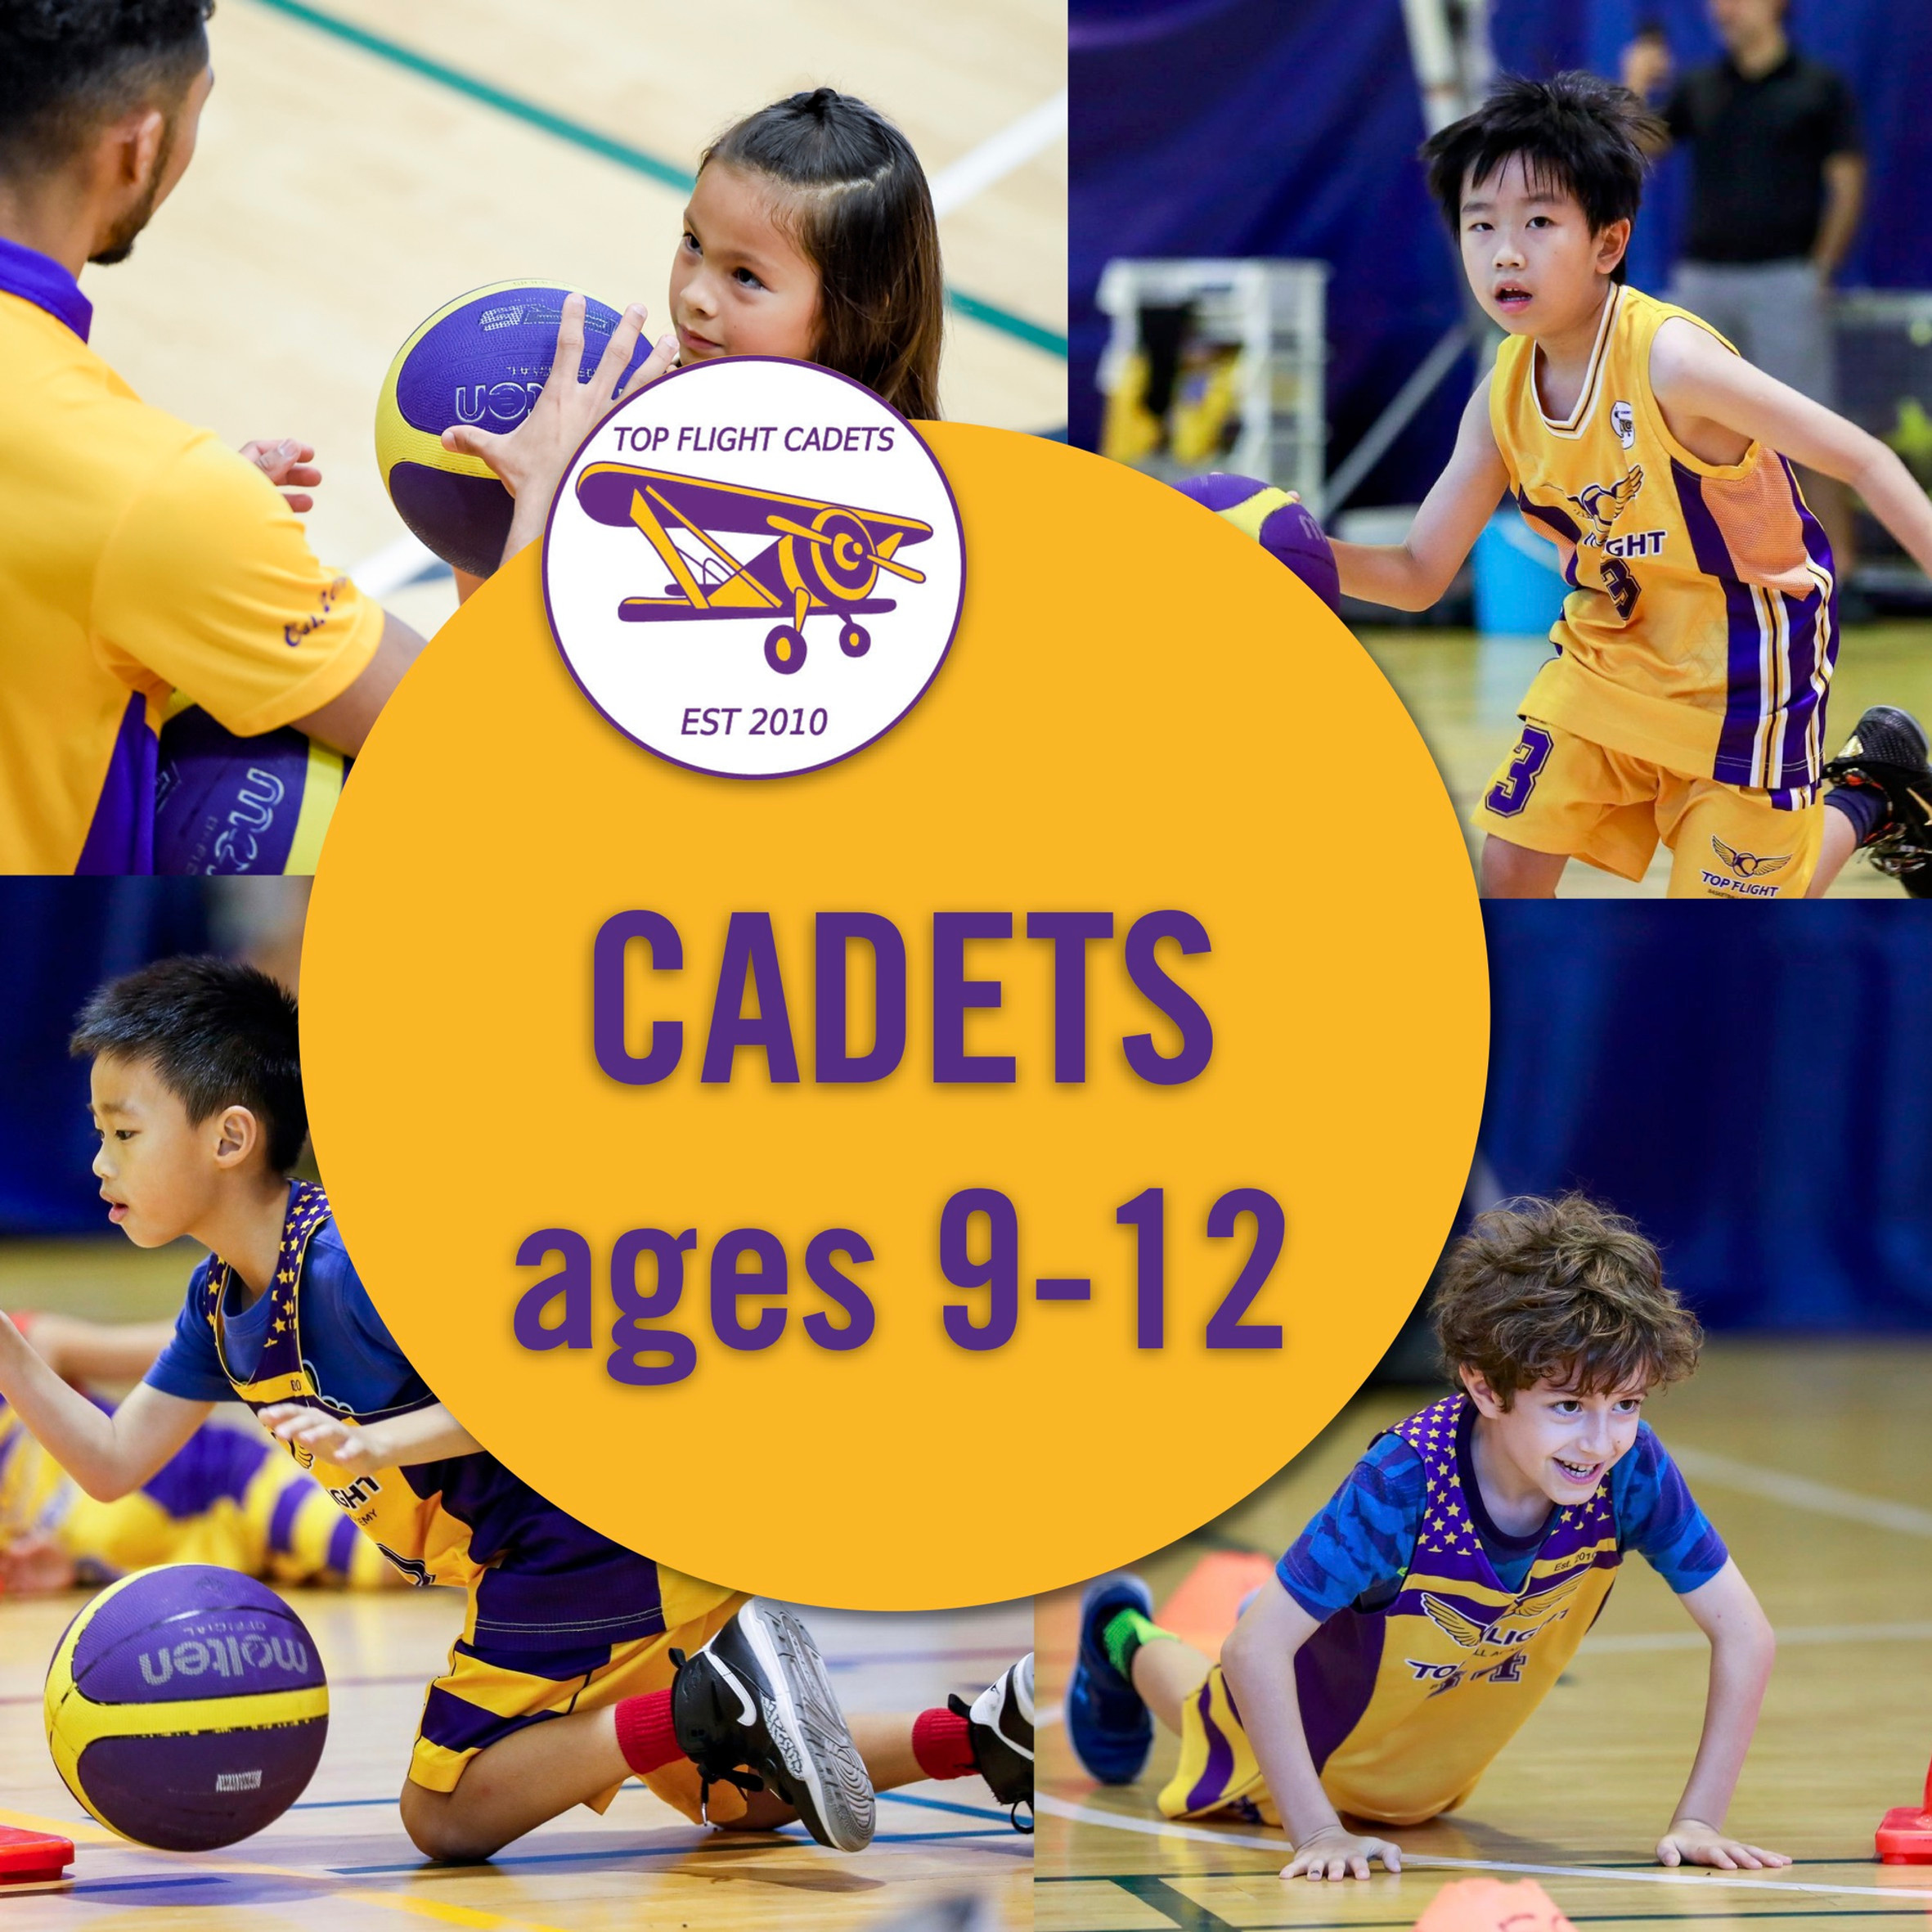 Cadets ages 9-12/09:00-10:30